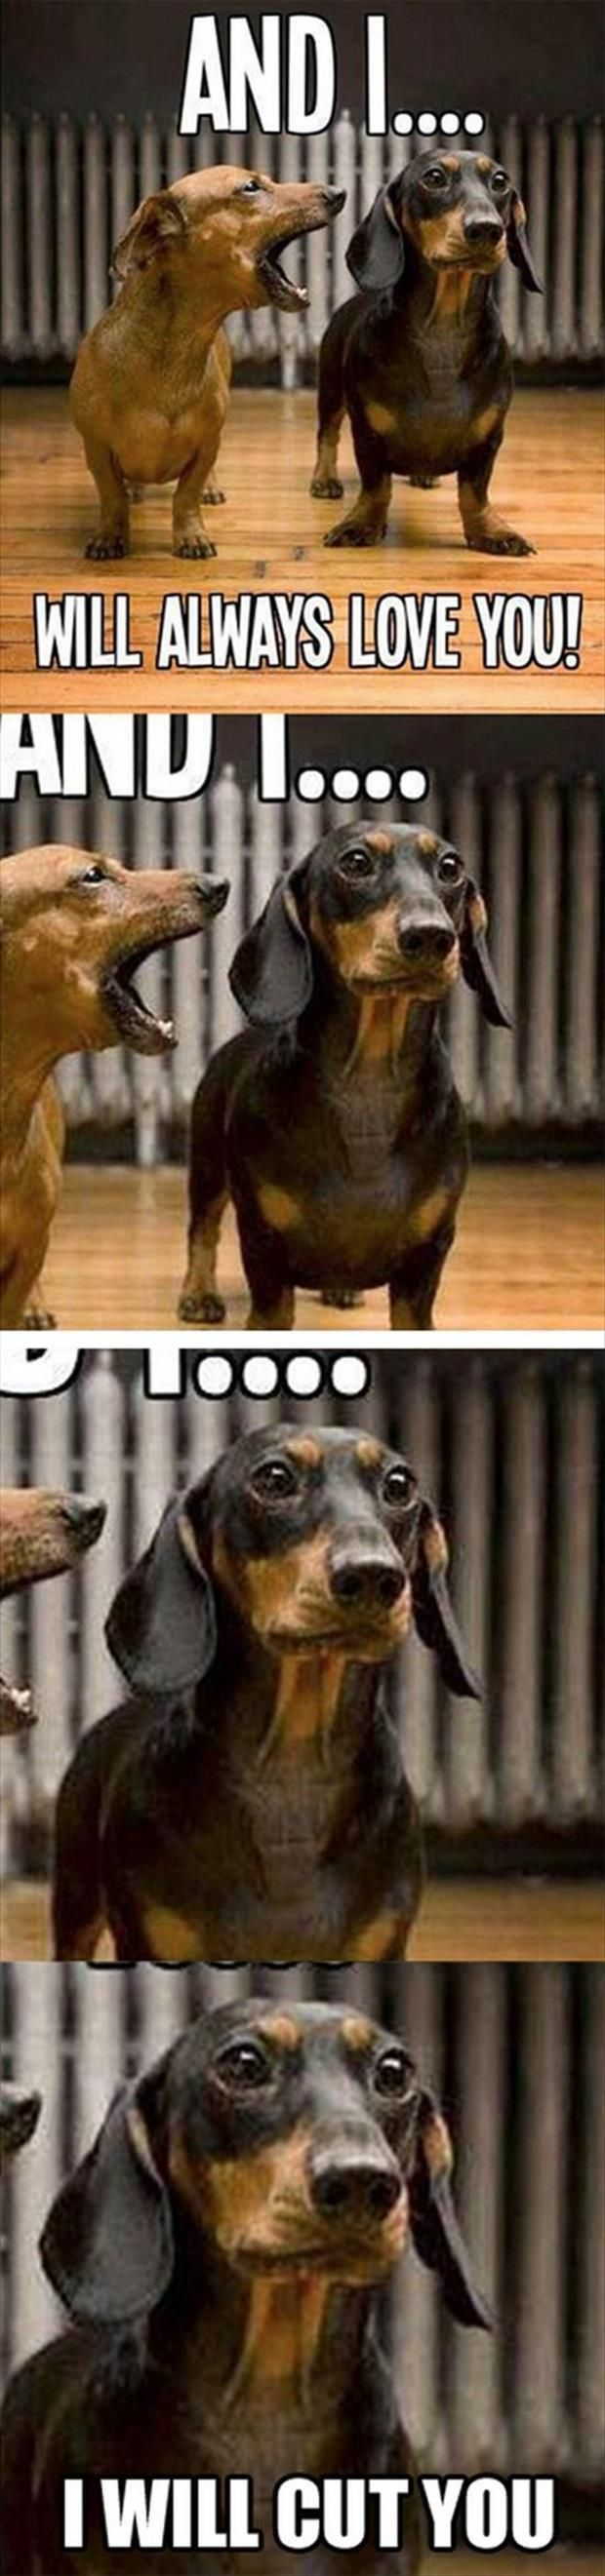 Dump A Day Funny Animal Pictures Of The Day – 21 Pics